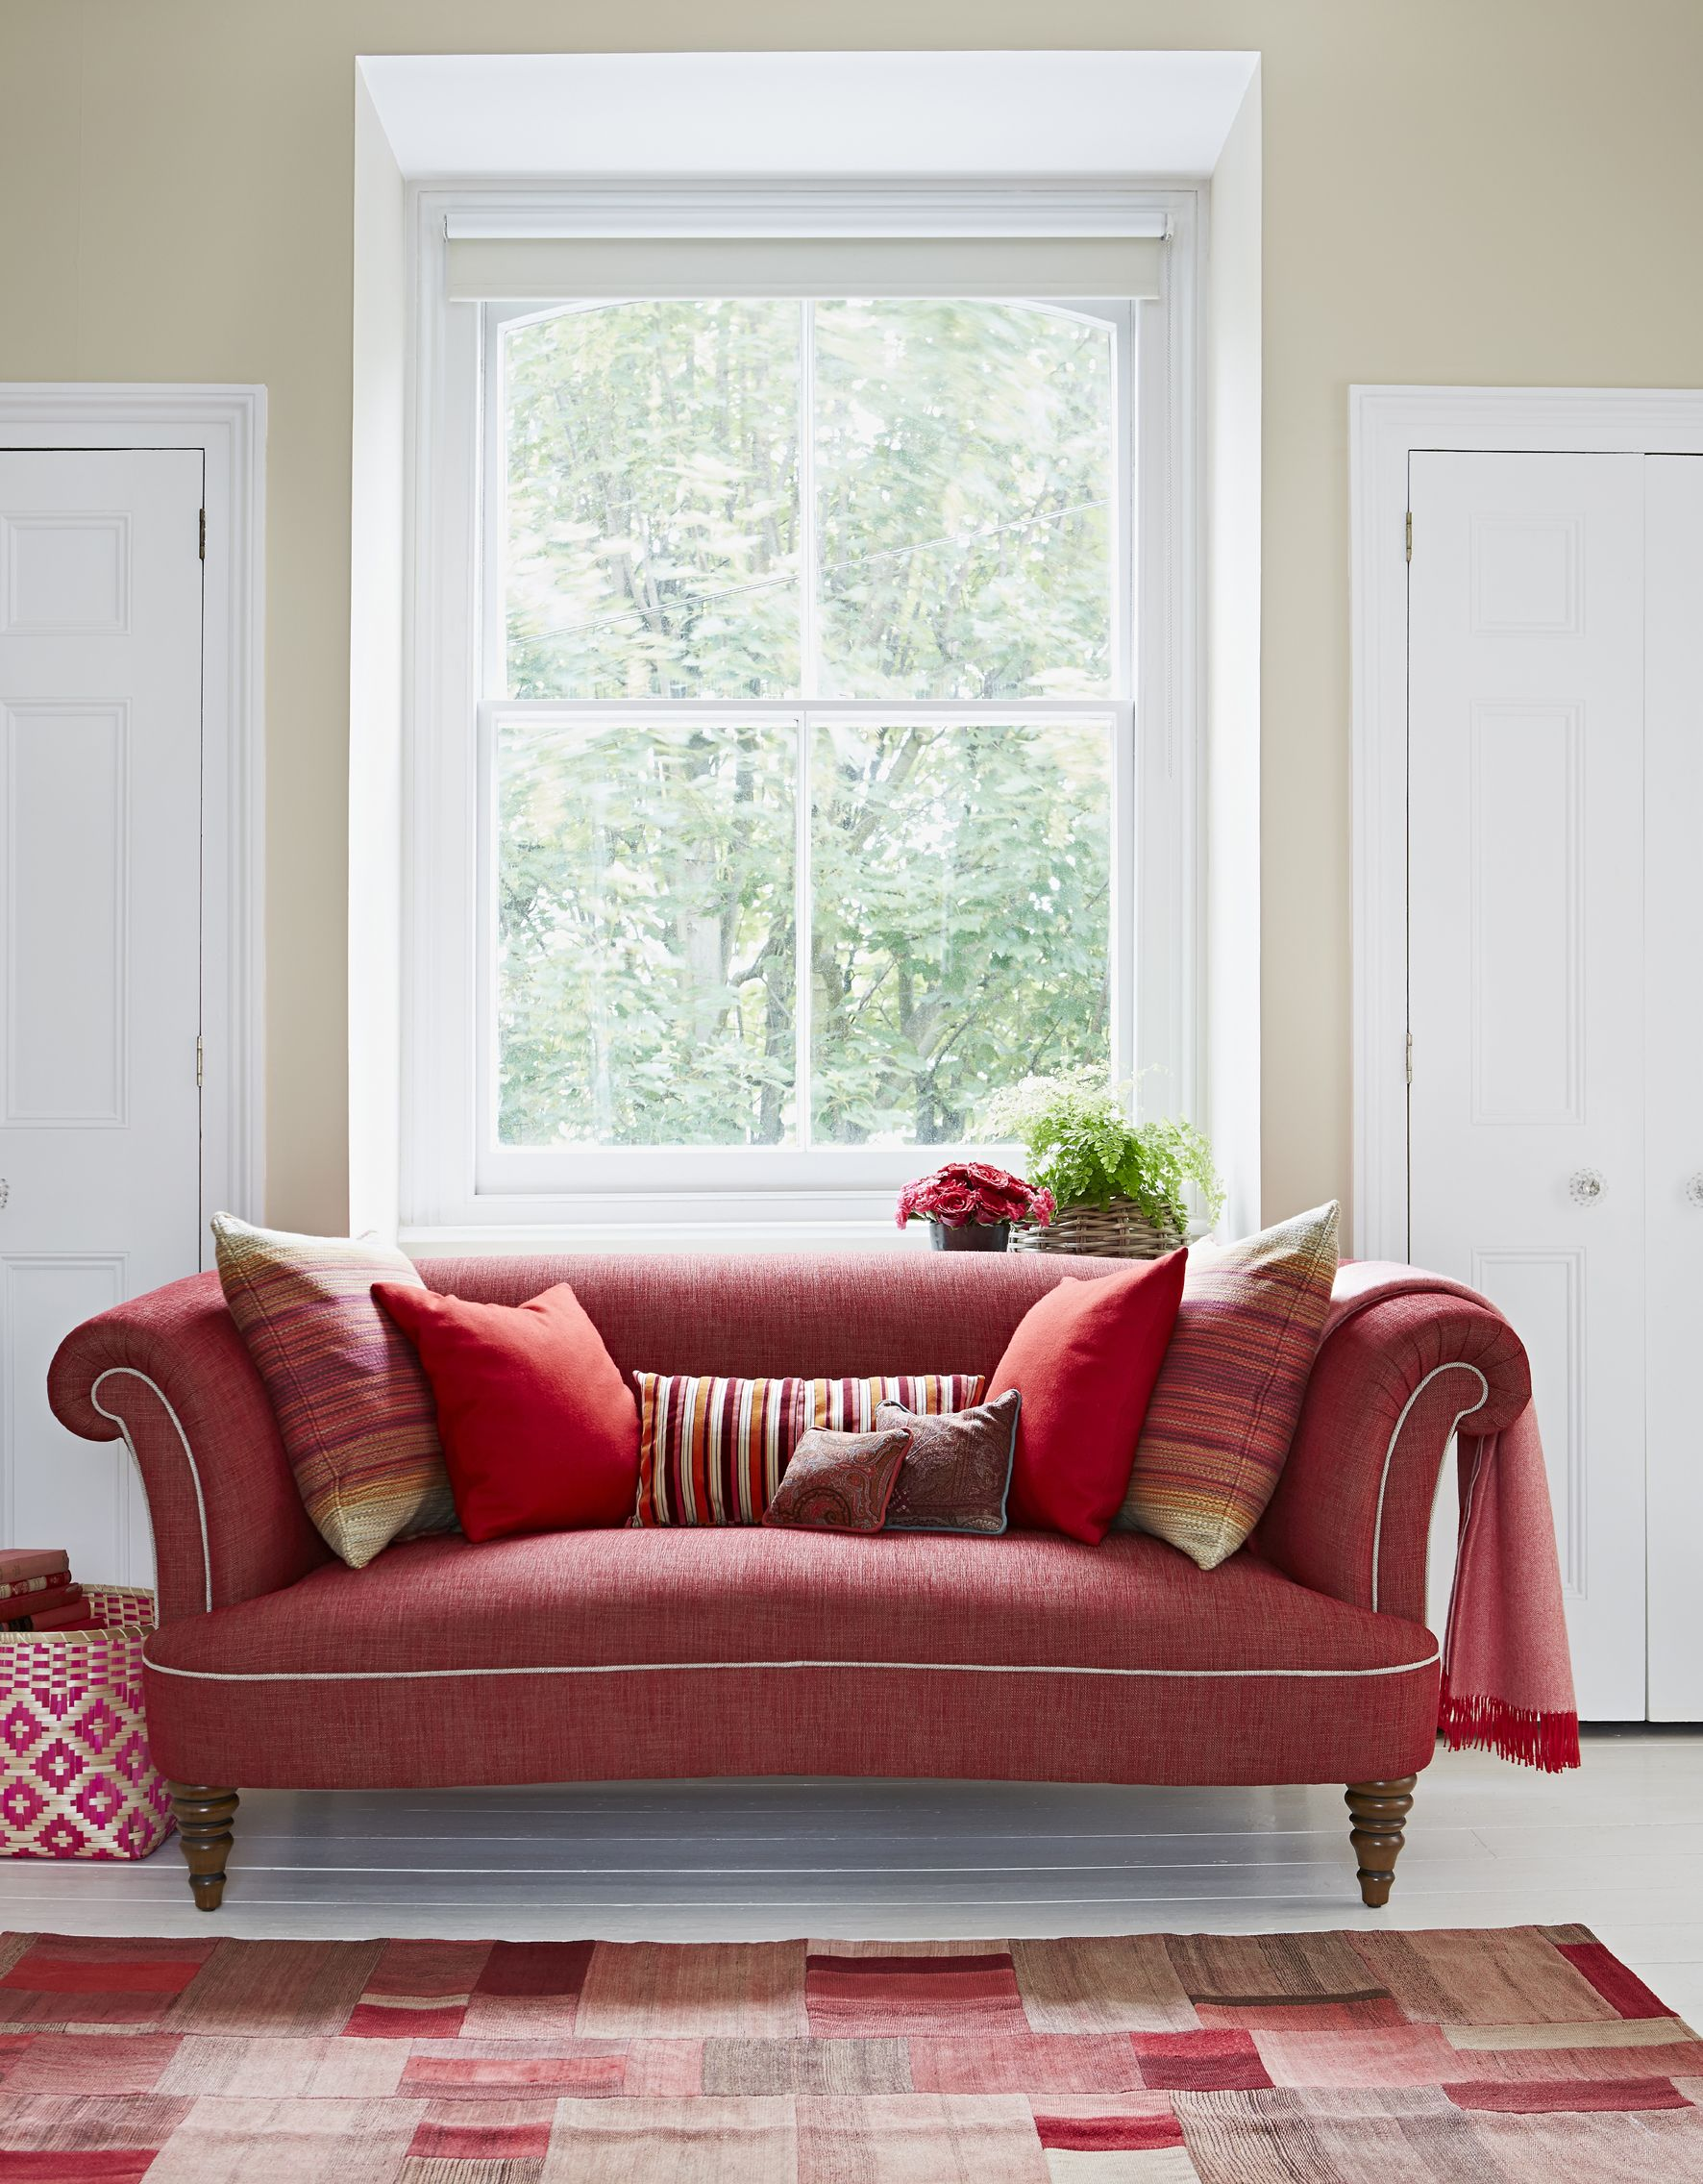 This curvy red Isabelle medium sofa from Parker Knoll is a